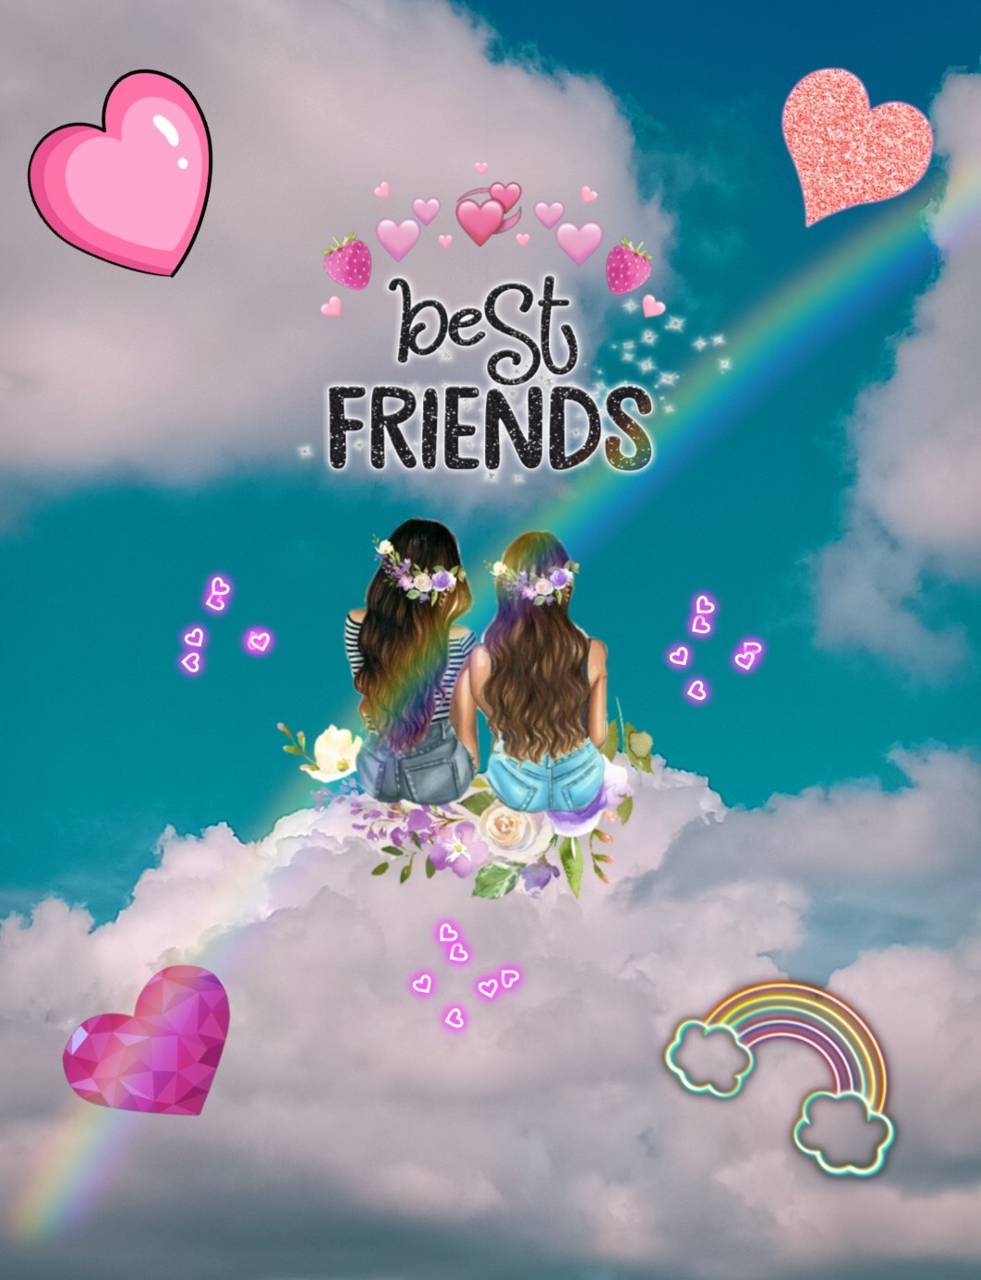 Best Friends Forever Wallpaper